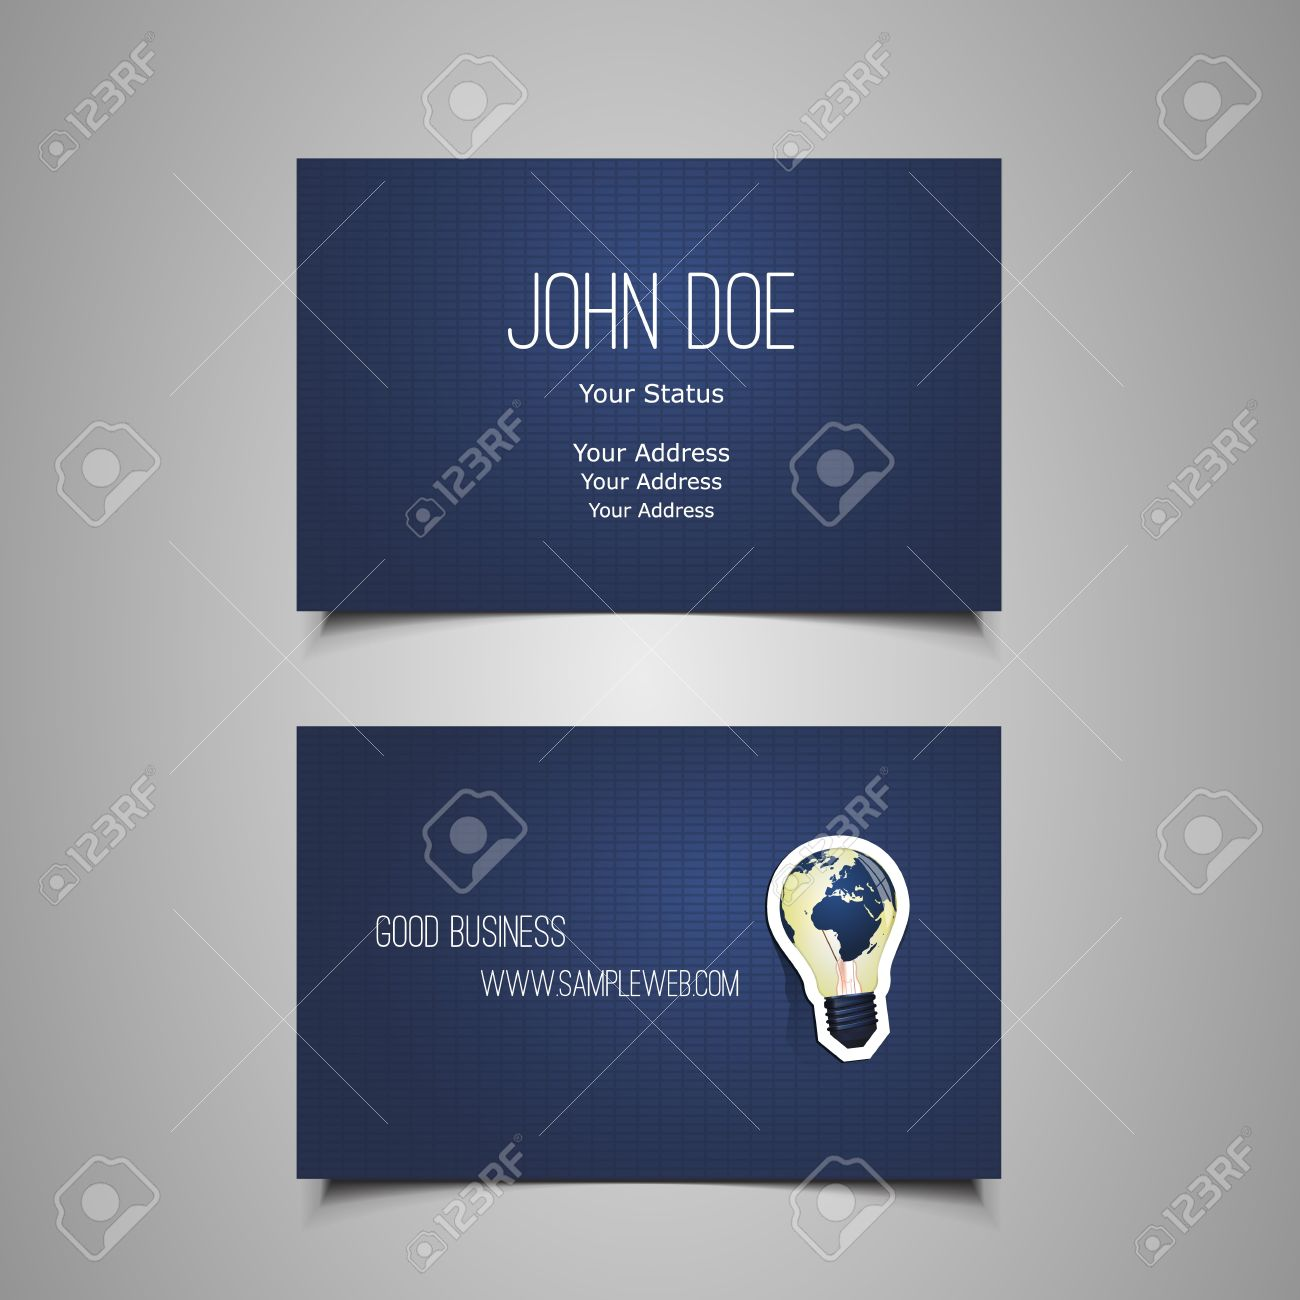 Business card template royalty free cliparts vectors and stock business card template reheart Gallery